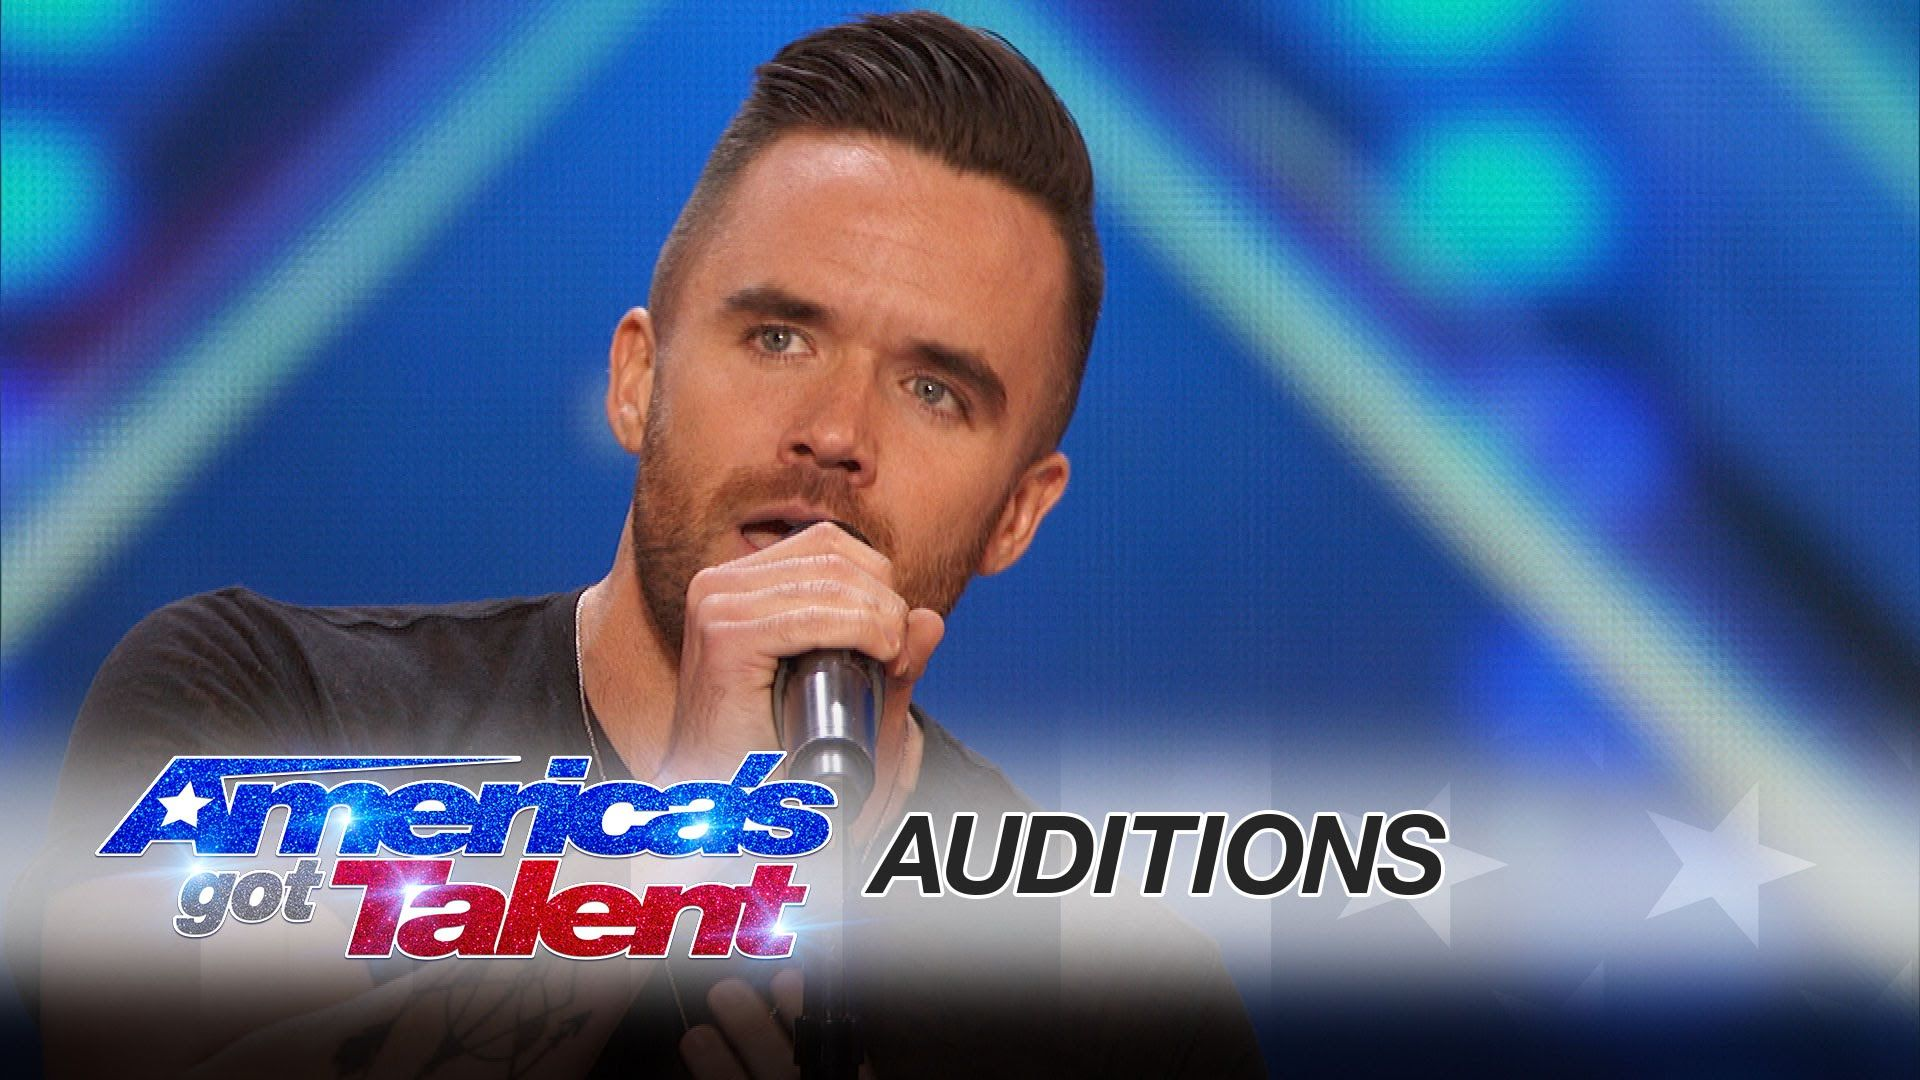 Americas got talent 2017 male singer - Brian Justin Crum Singer Gets Standing Ovation With Powerful Cover America S Got Talent 2016